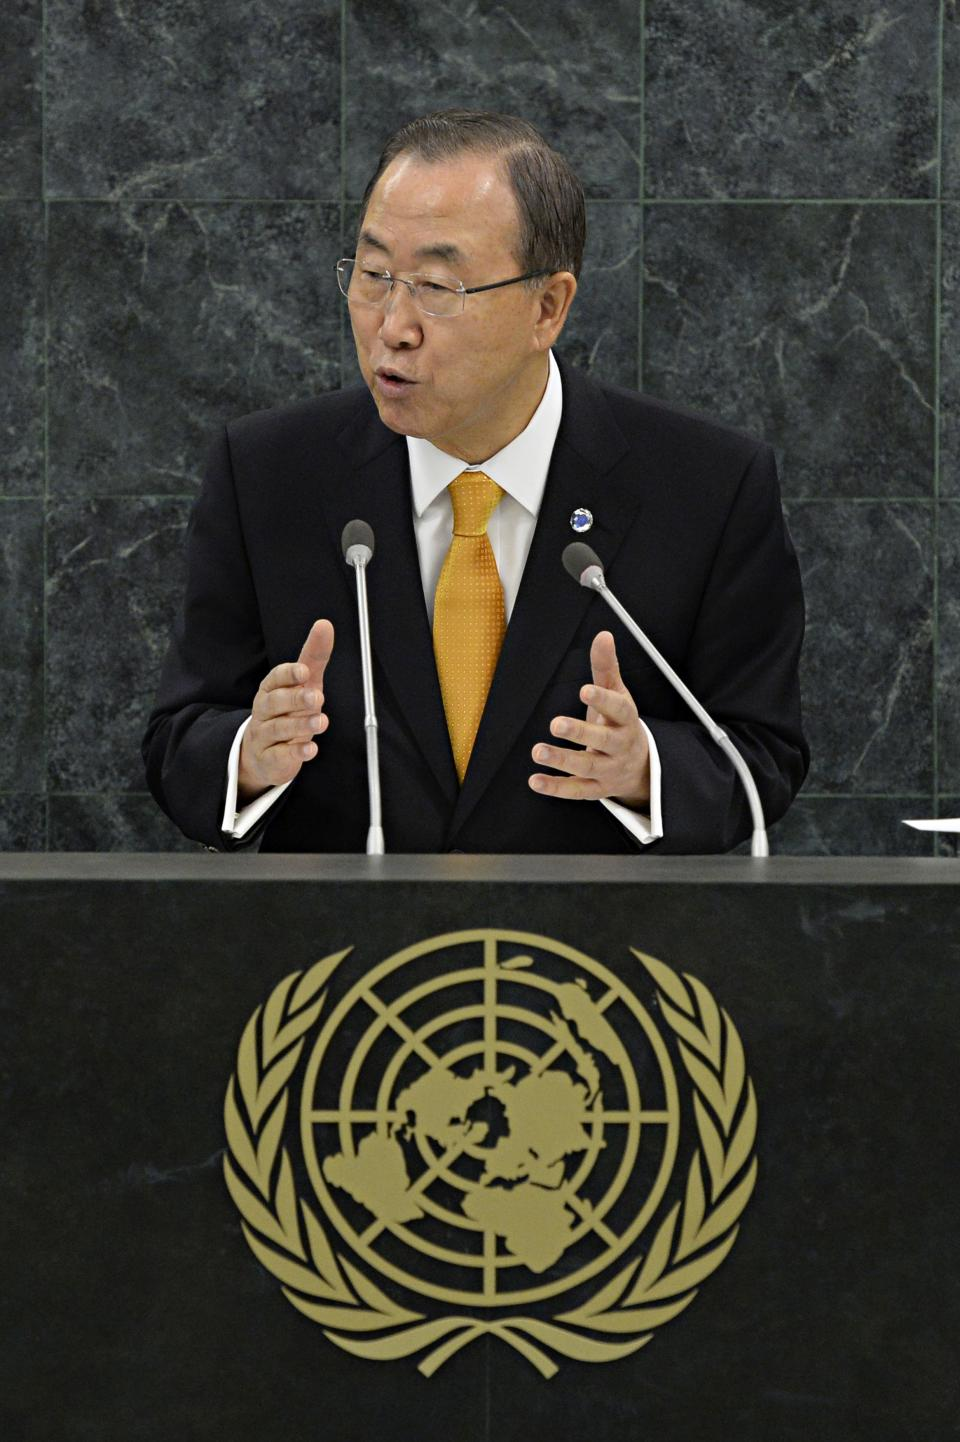 U.N. Secretary General Ban Ki-moon speaks during the 68th United Nations General Assembly on Tuesday Sept. 24, 2013 in New York. (AP Photo/Andrew Burton,Pool)